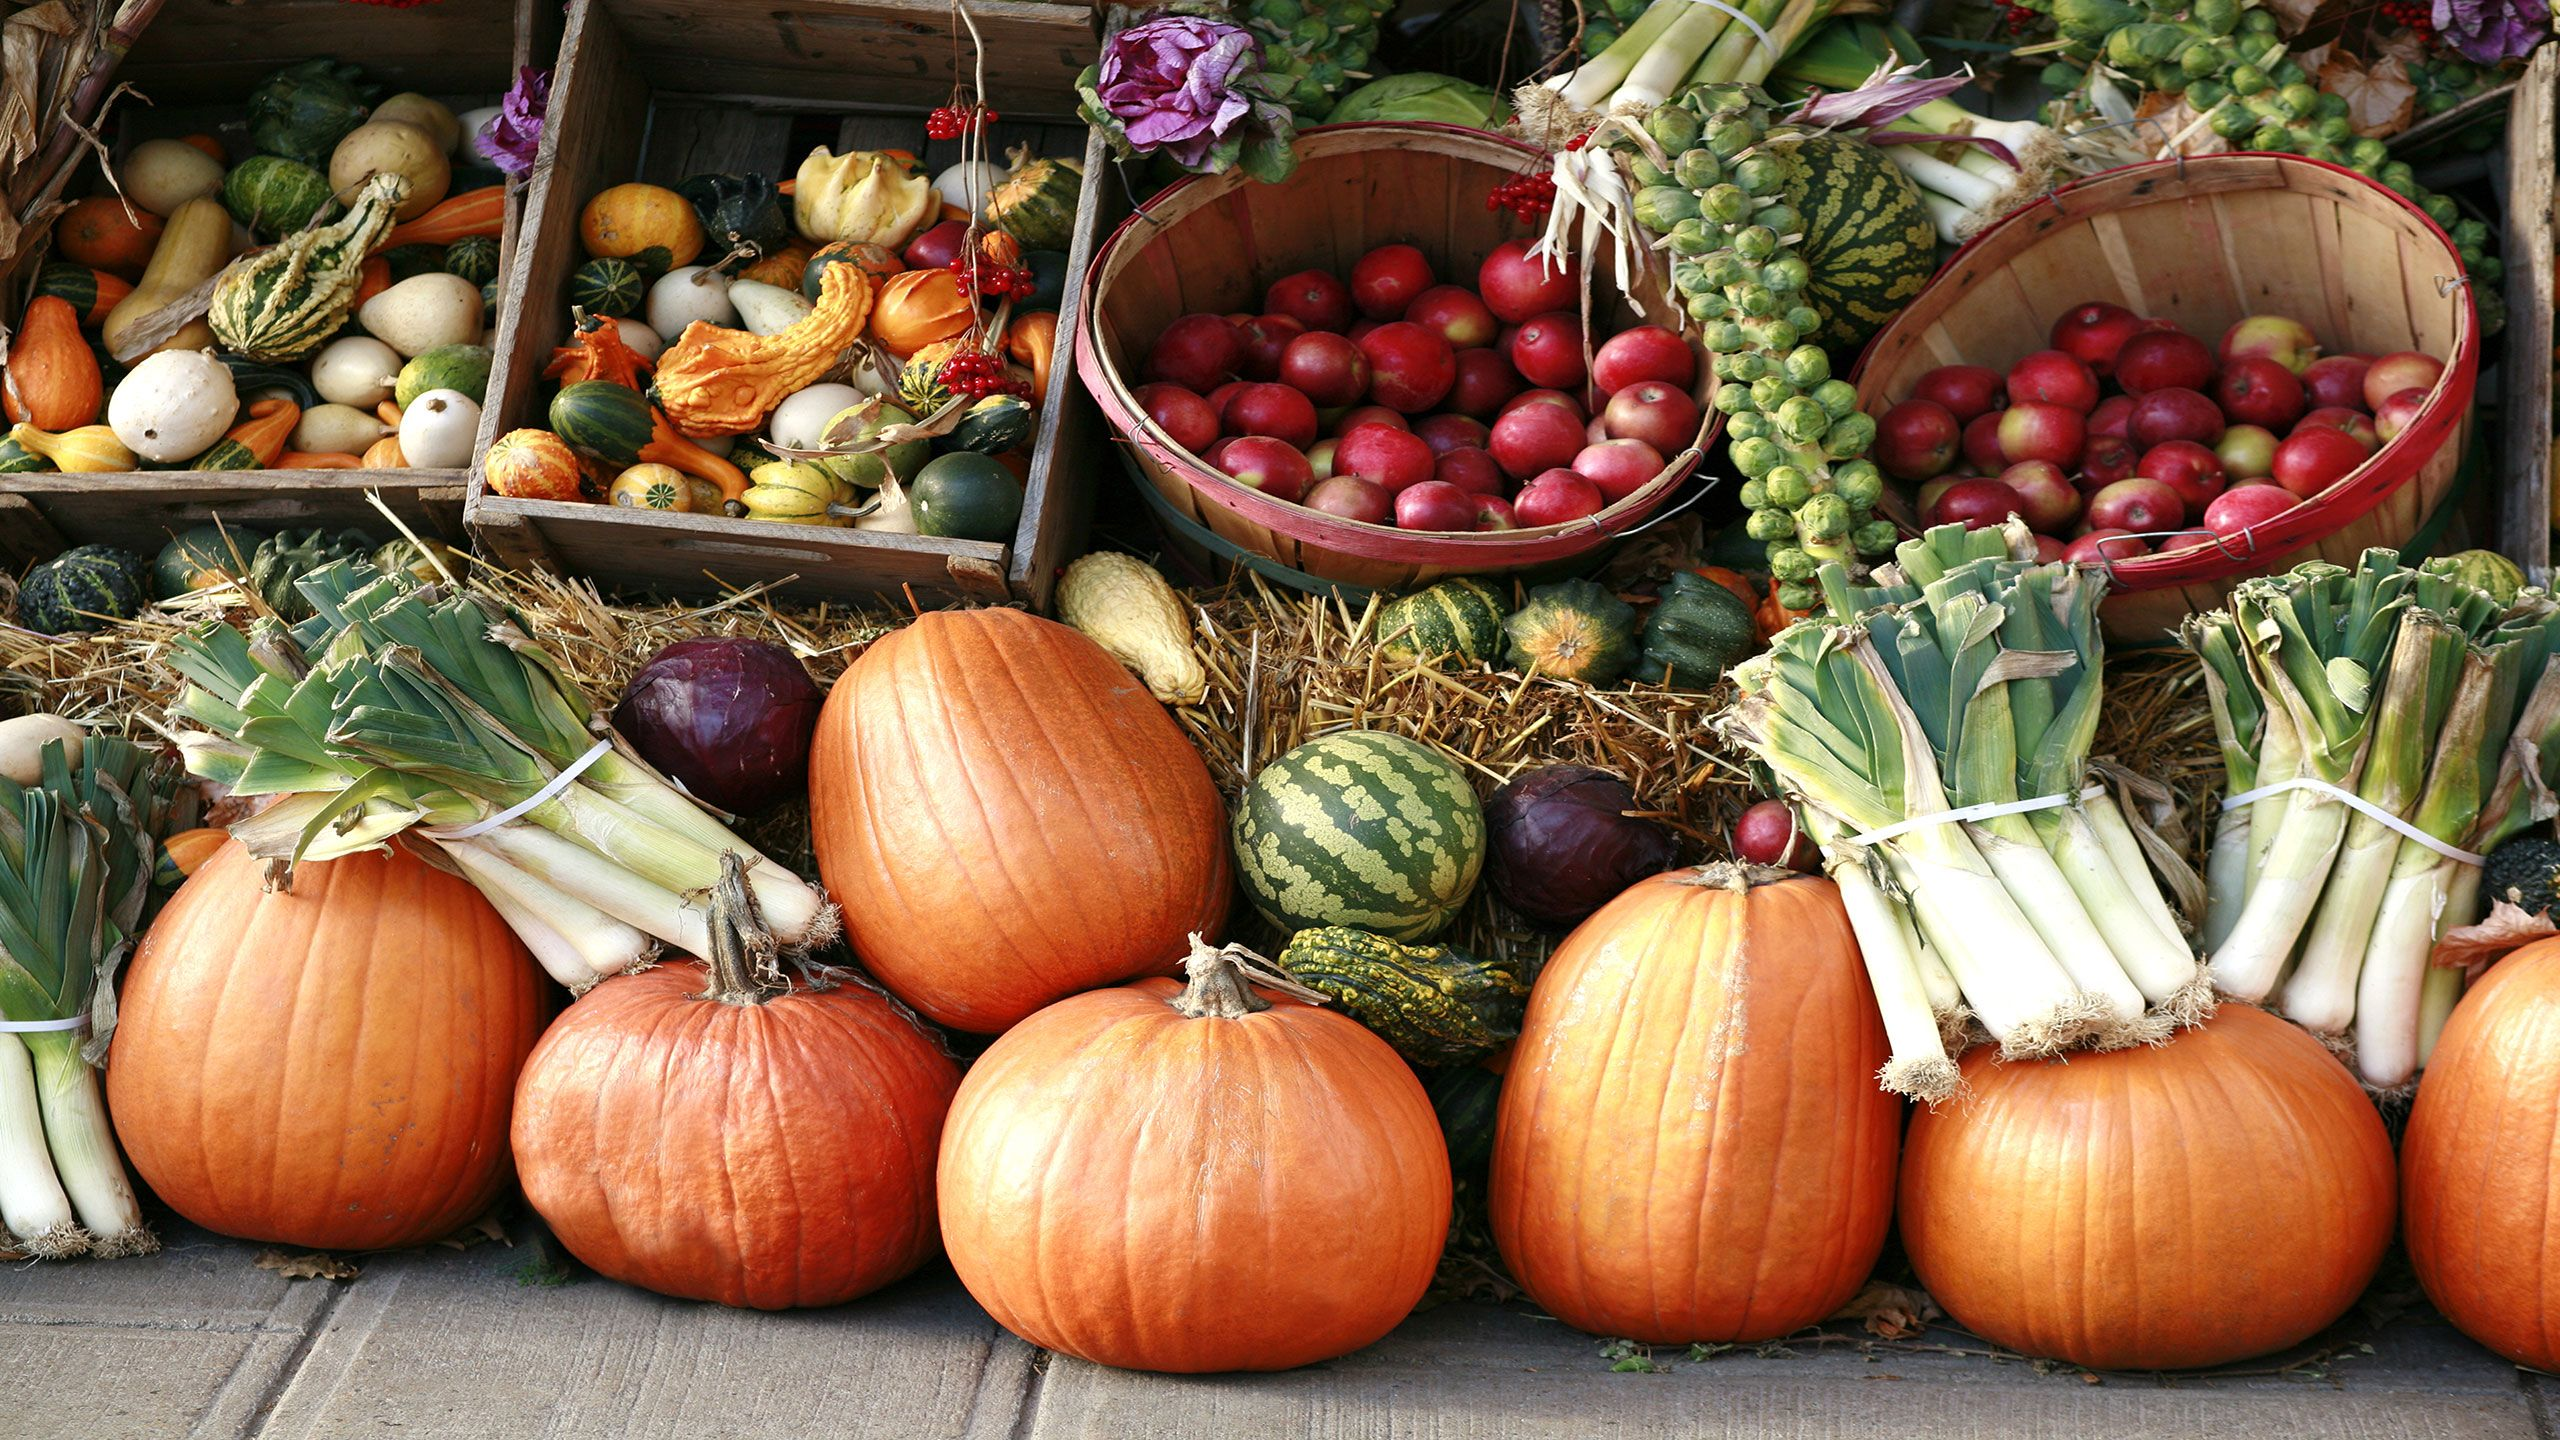 7 Fall Fruits and Veggies Your Body Needs (Plus Recipes)